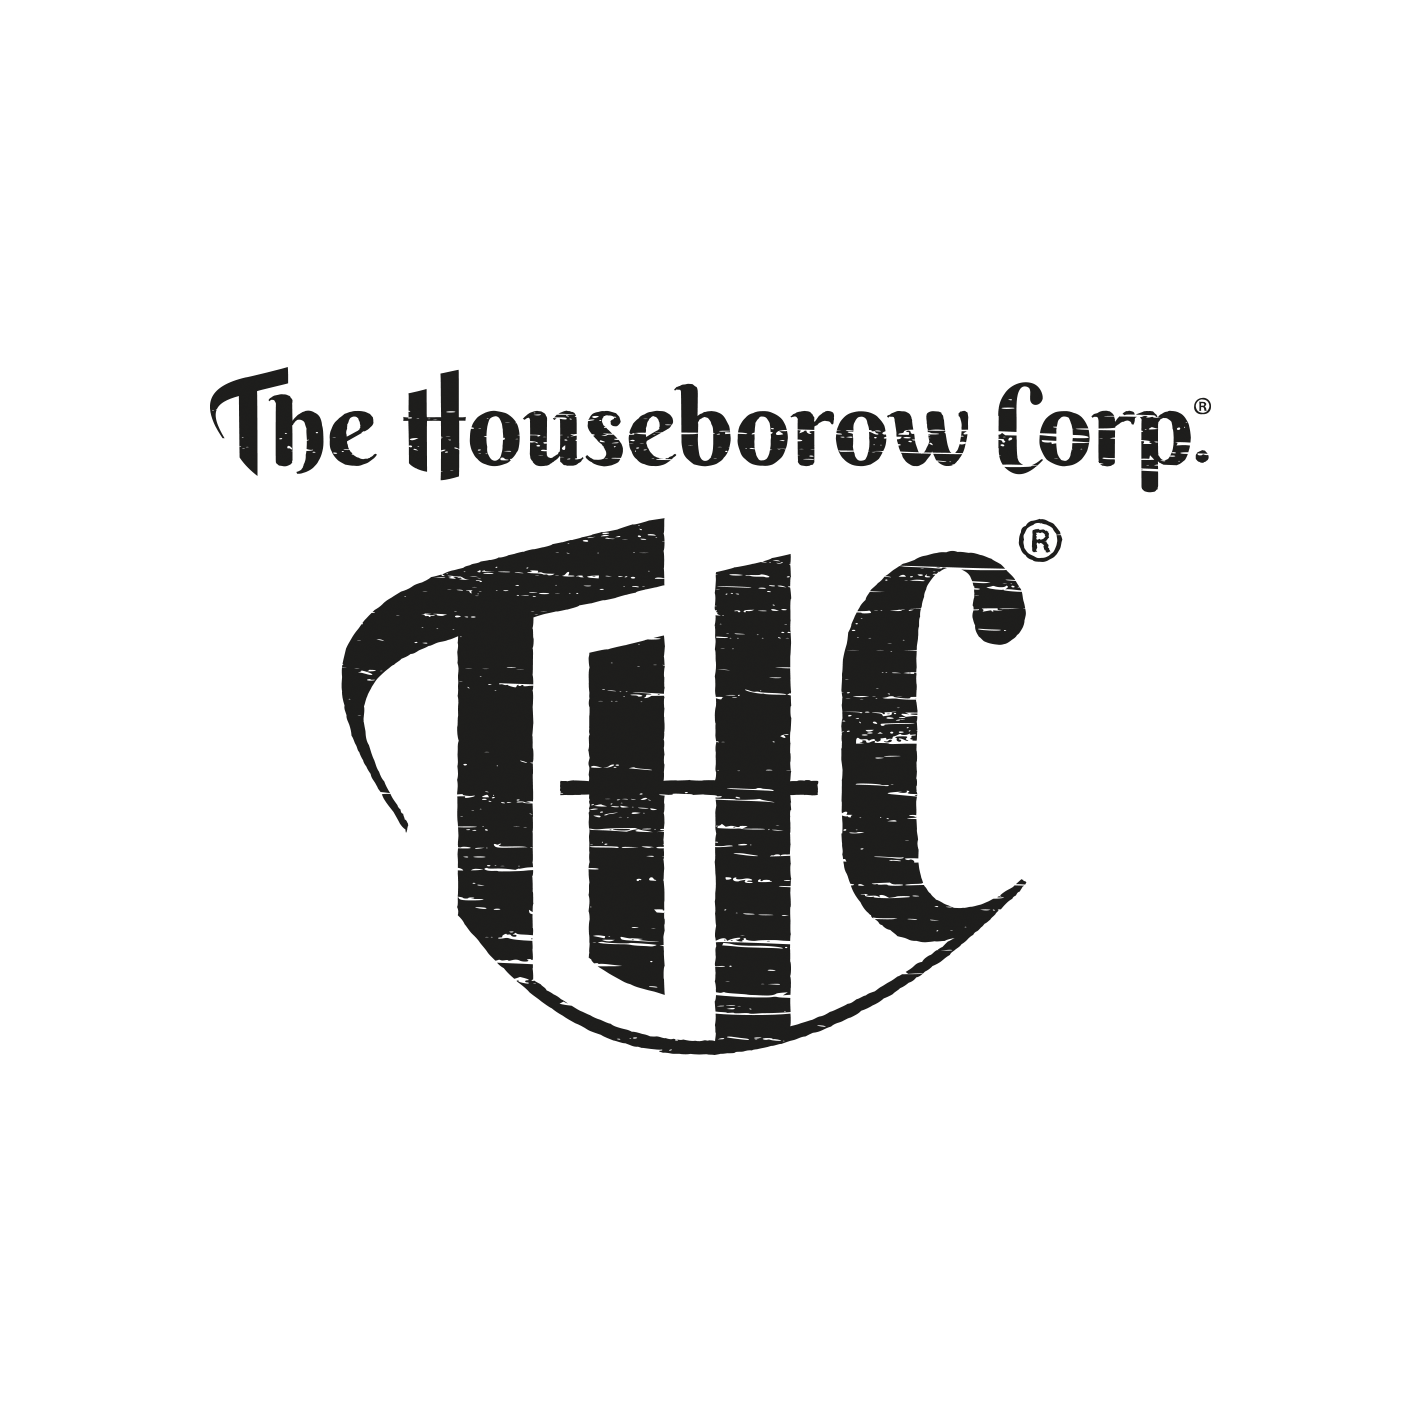 The House Borow Corp